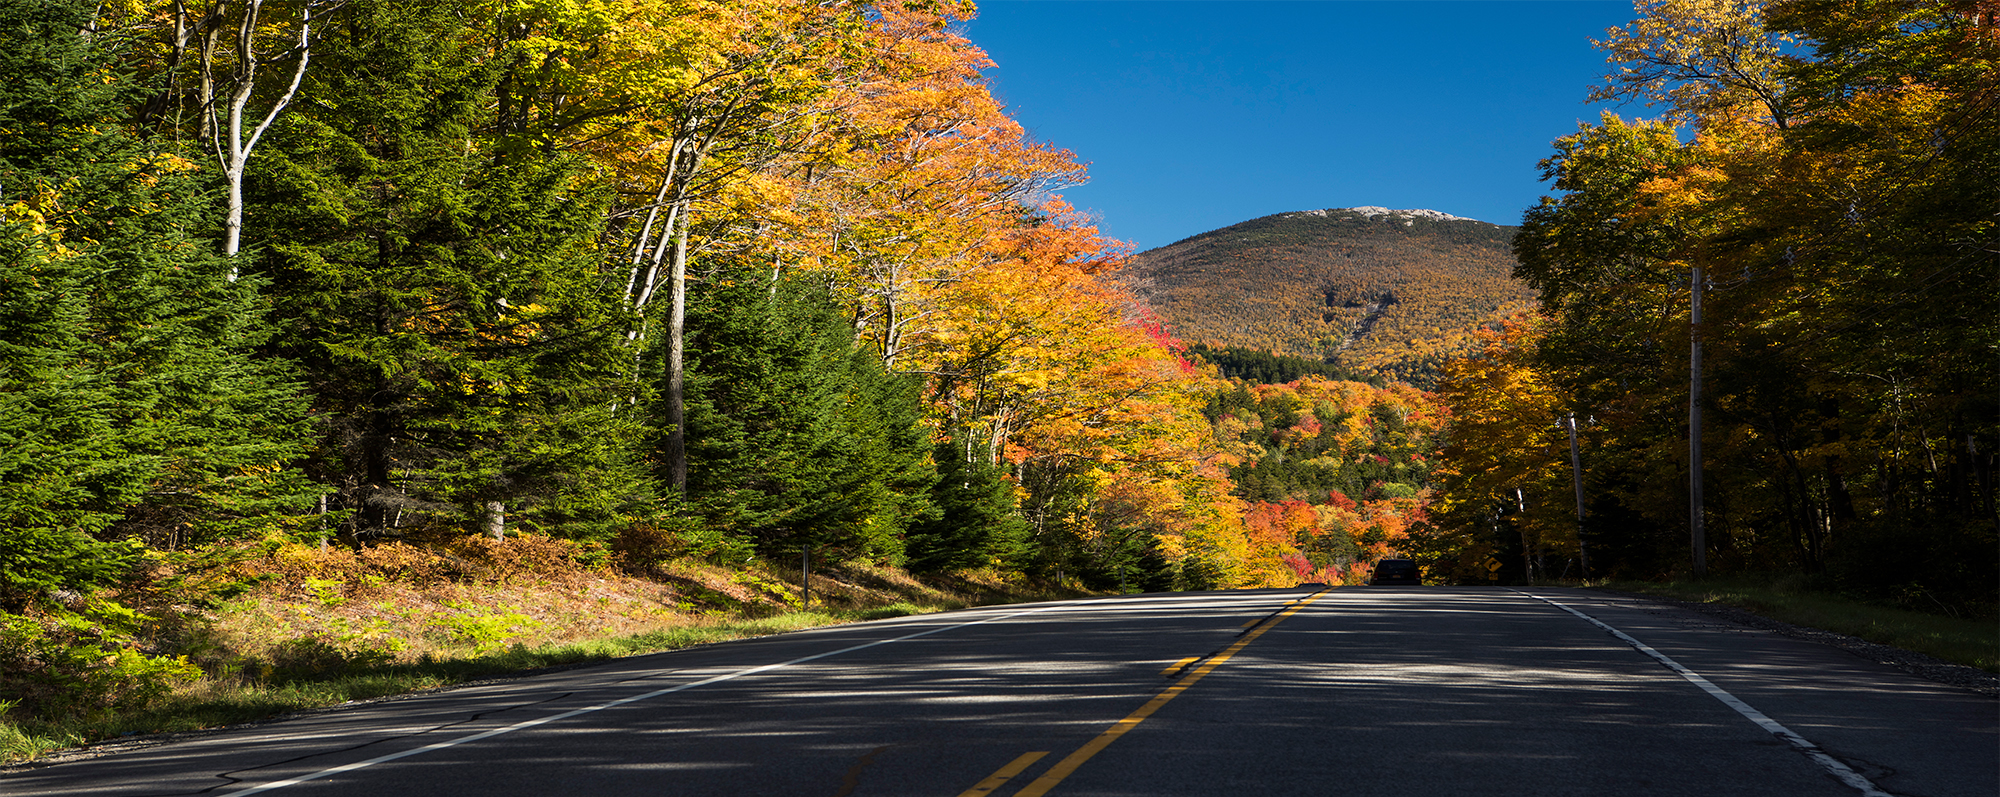 New York Scenic Drives | Things to Do in New York